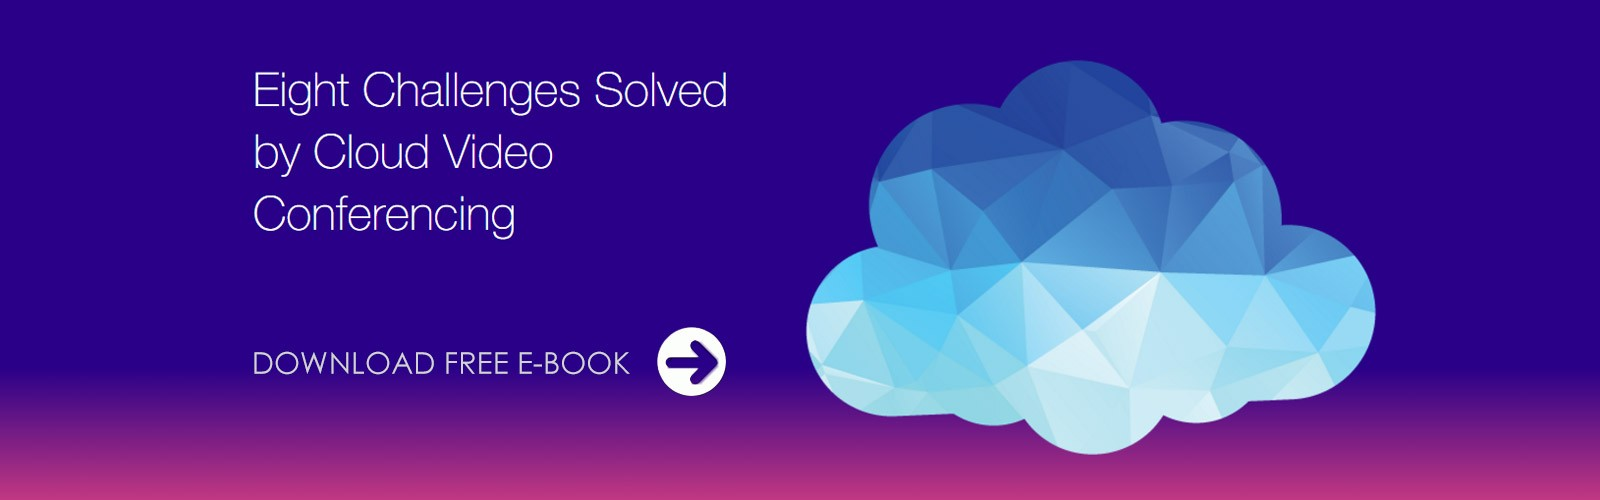 Download E-Book: 8 challenges solved by Cloud Video Conferencing